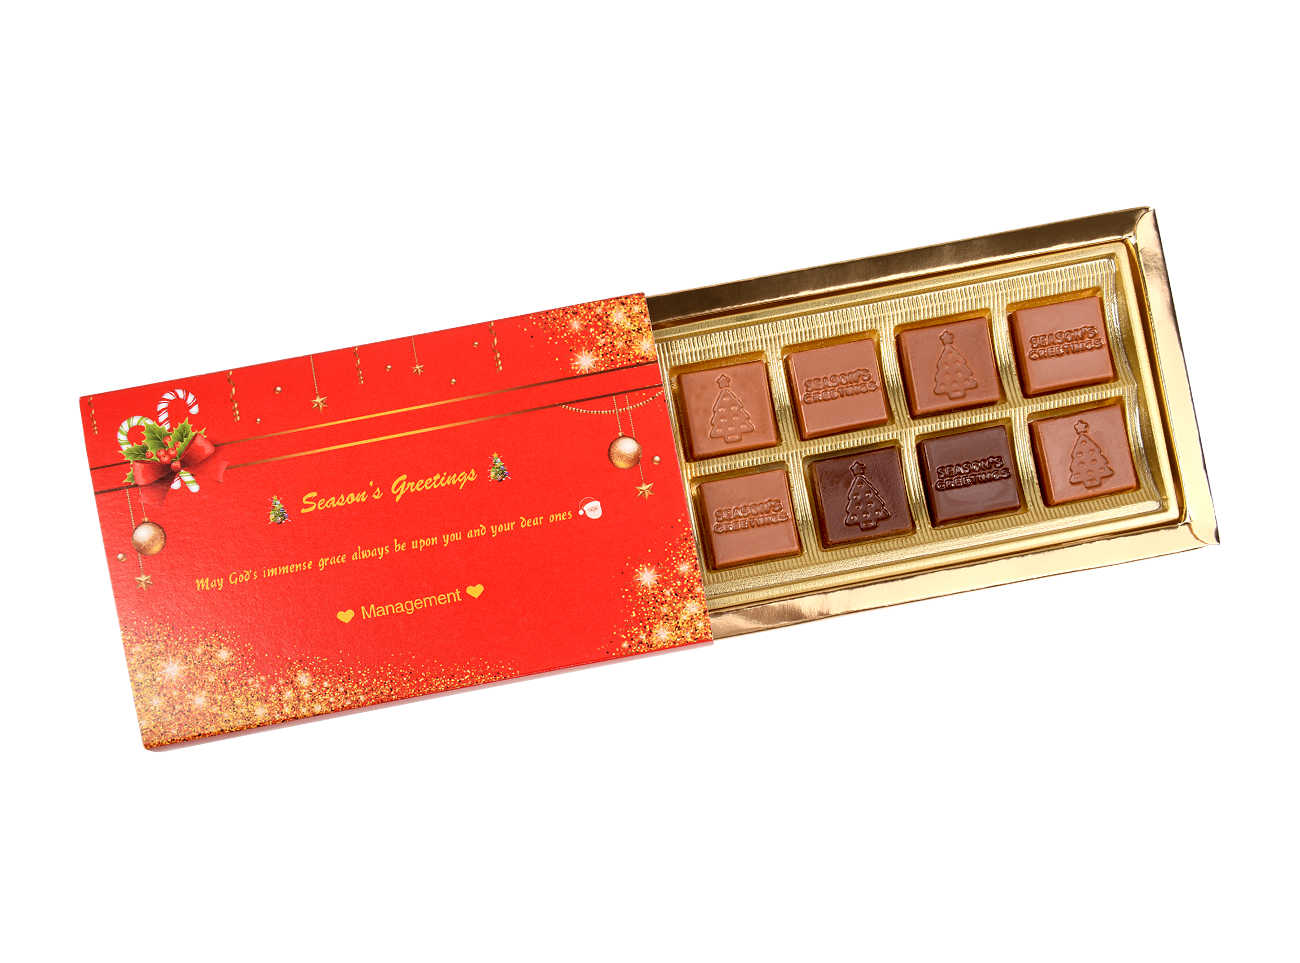 Mon Amie Seasons Greetings, 8 Pcs In Customized Belgian Chocolate